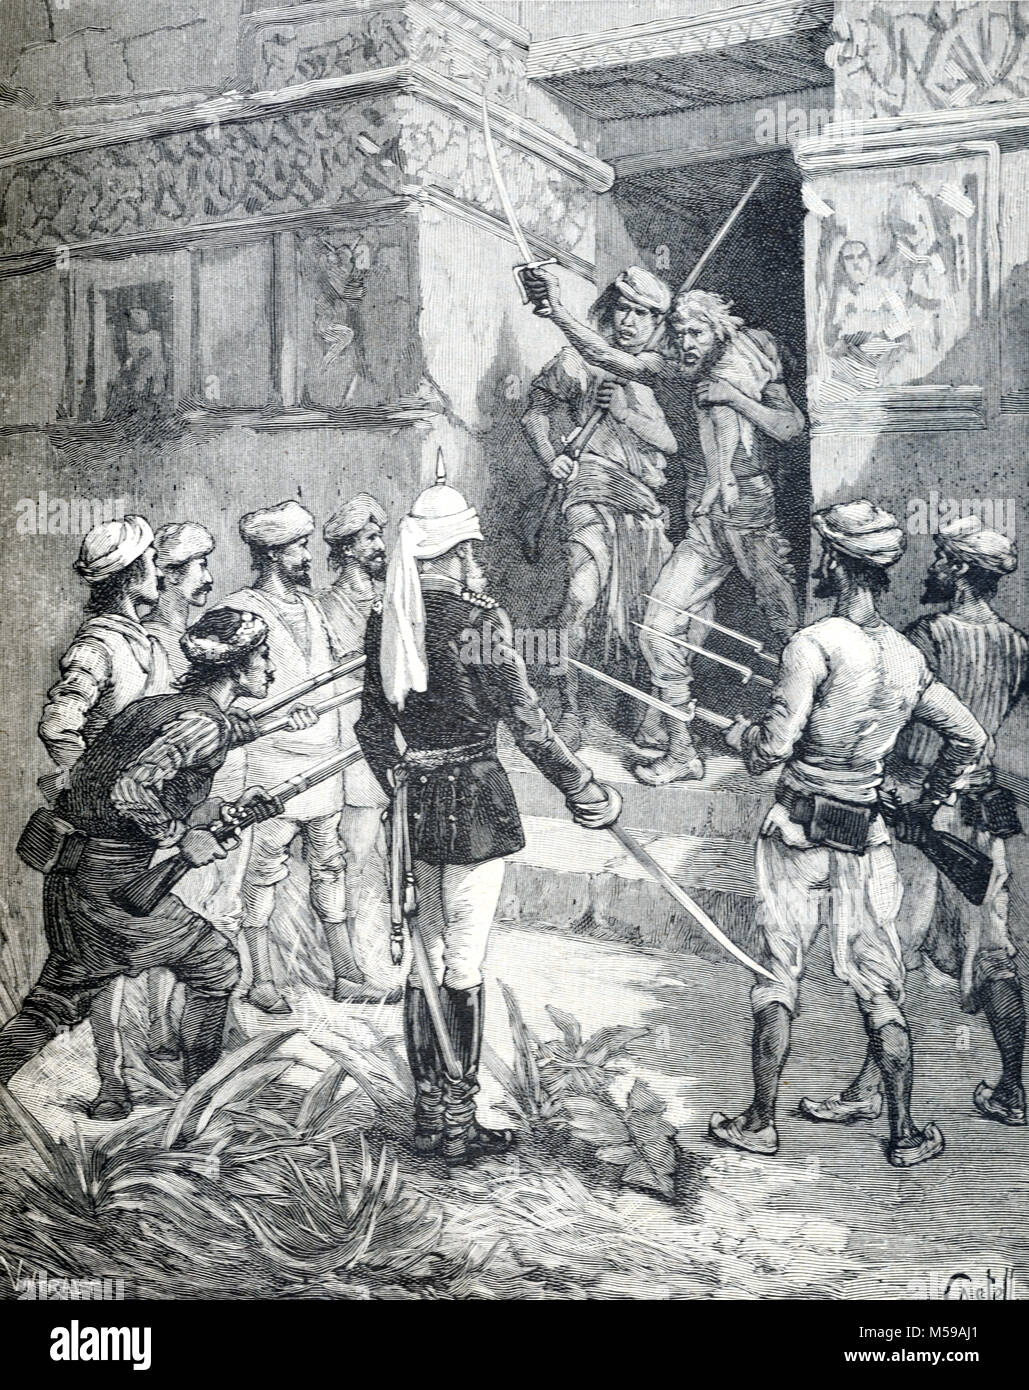 Human Sacrifice in Colonial India. British Colonial Officials Arrest a Hindu Fanatic After a Human Sacrifice in Stock Photo